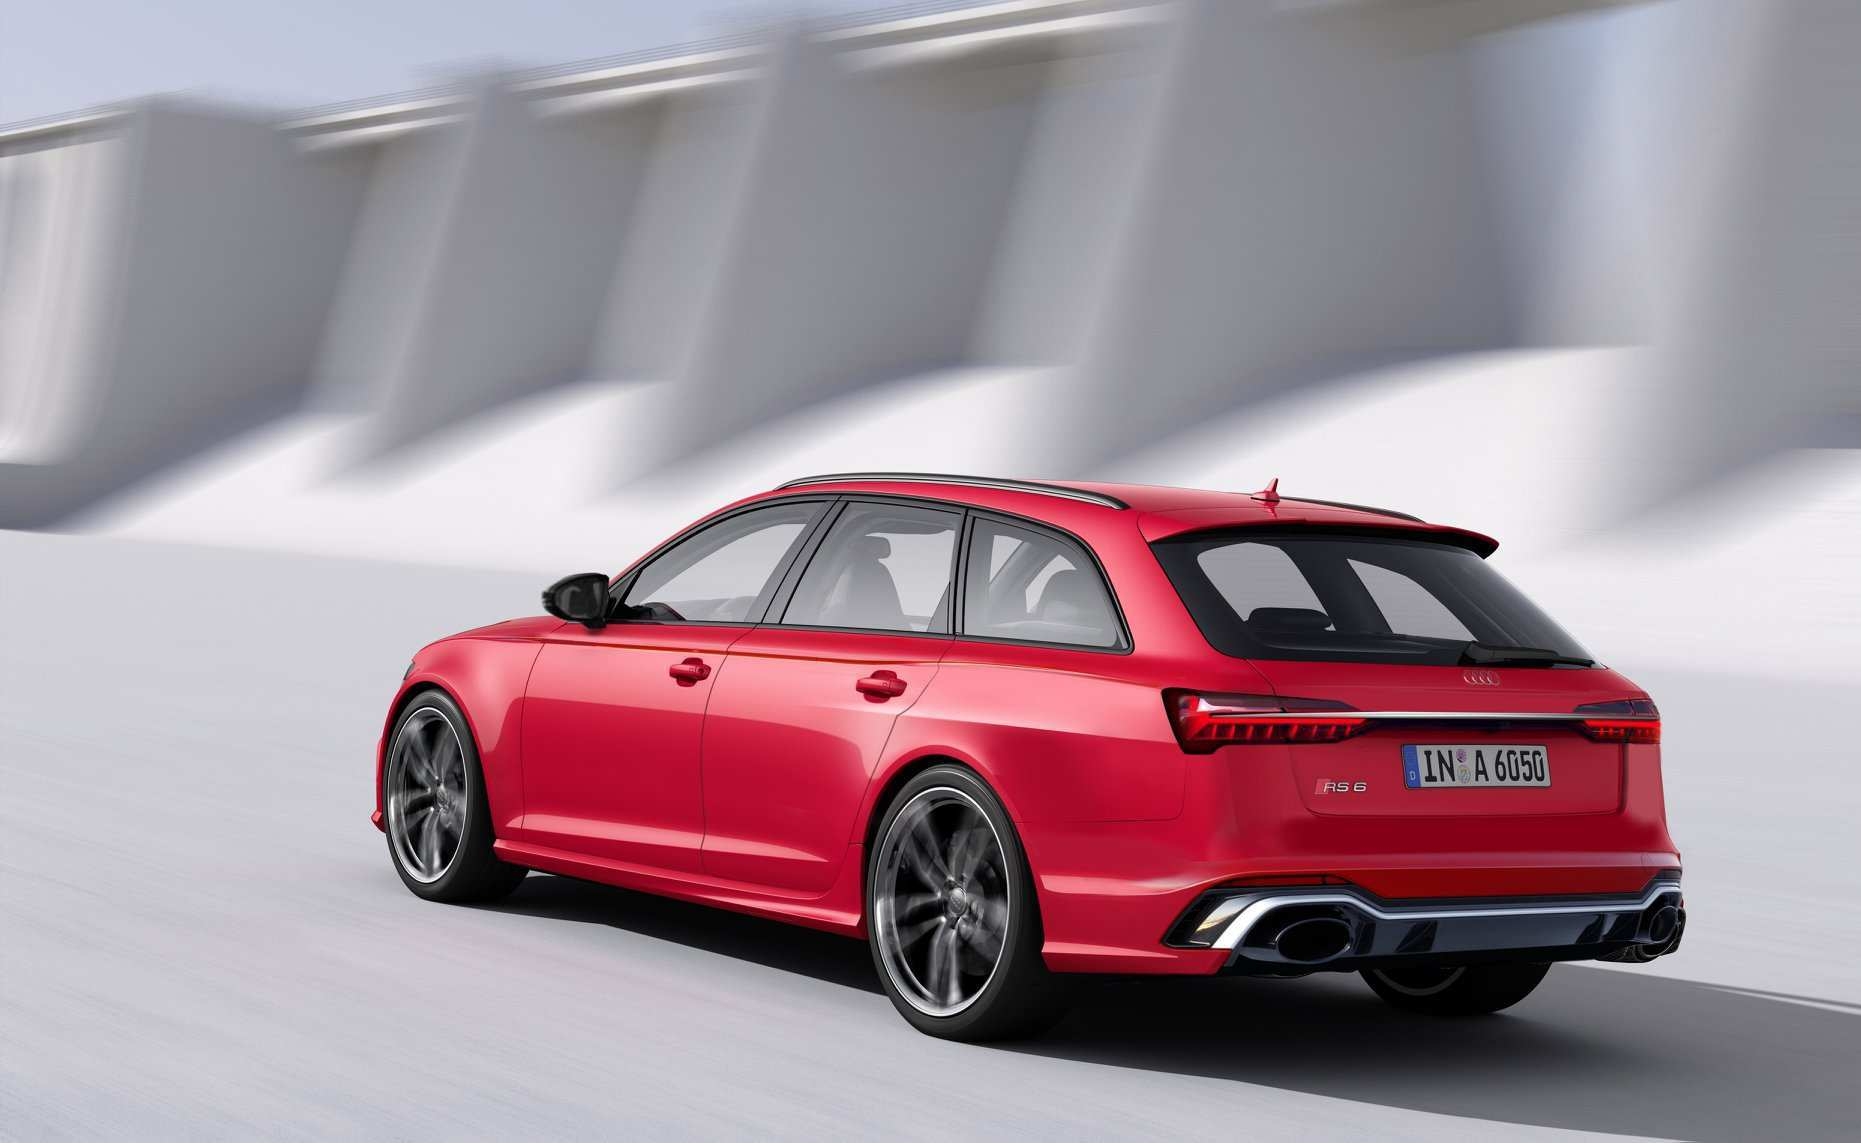 82 Concept of 2020 Audi Rs6 Avant Usa Specs for 2020 Audi Rs6 Avant Usa